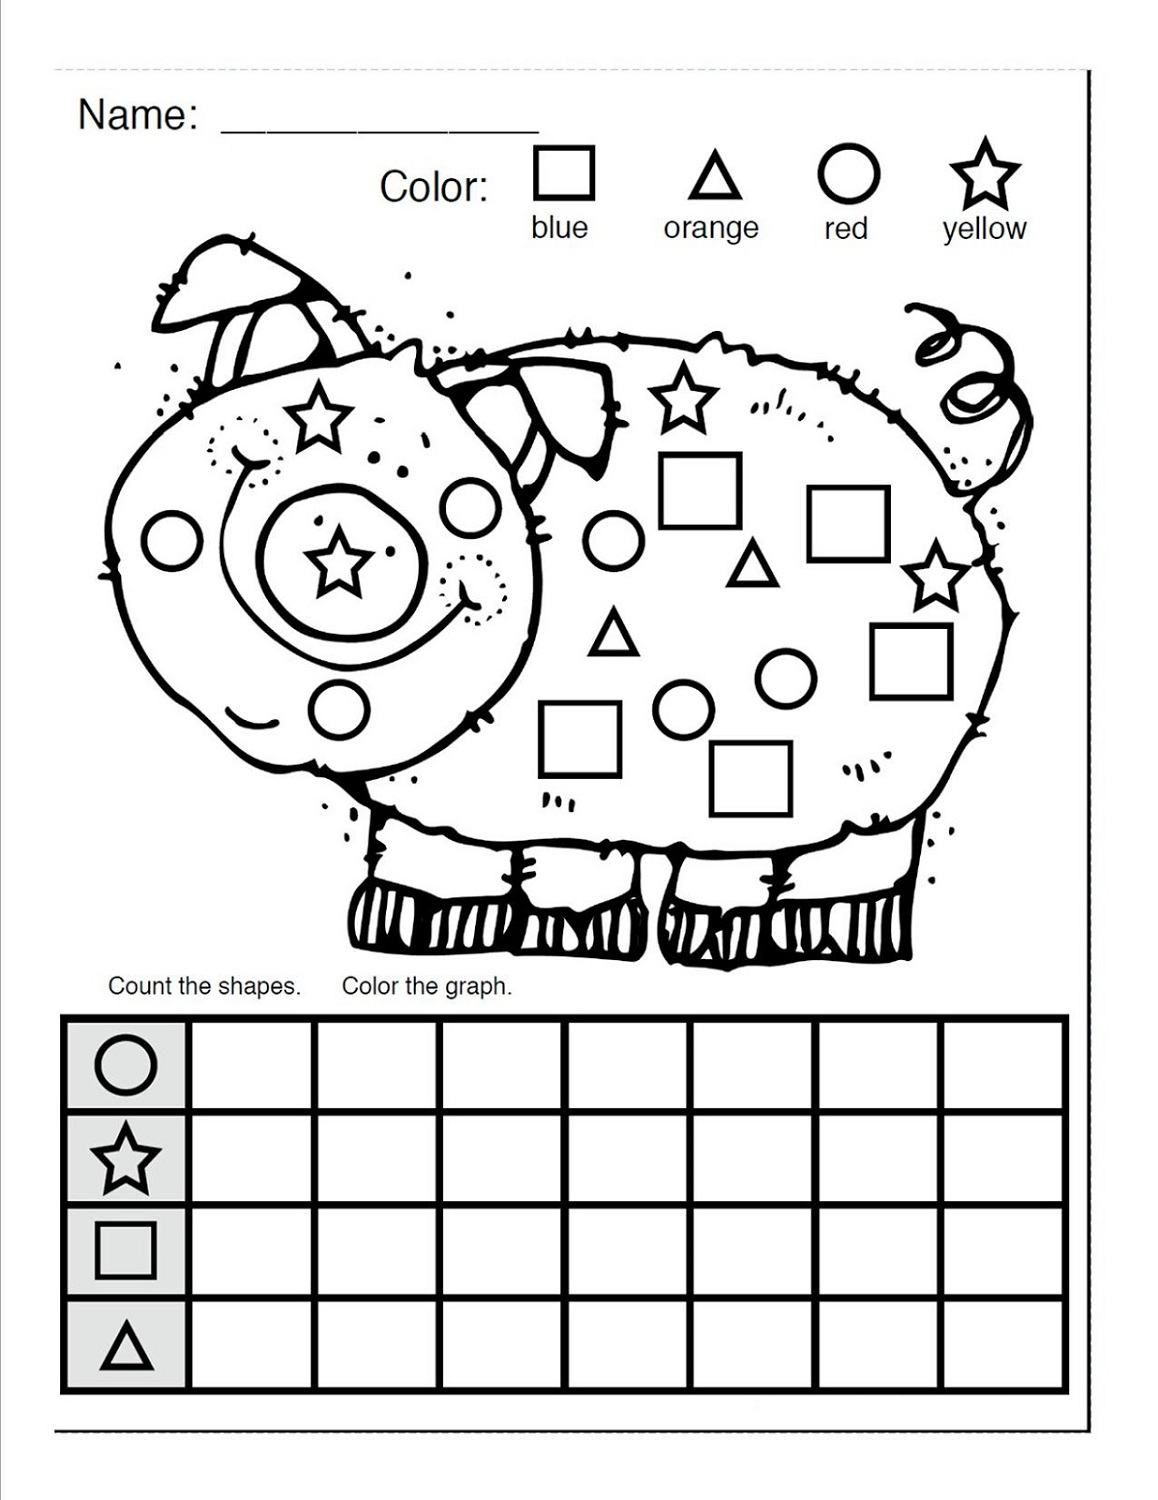 color the shapes worksheet piggy